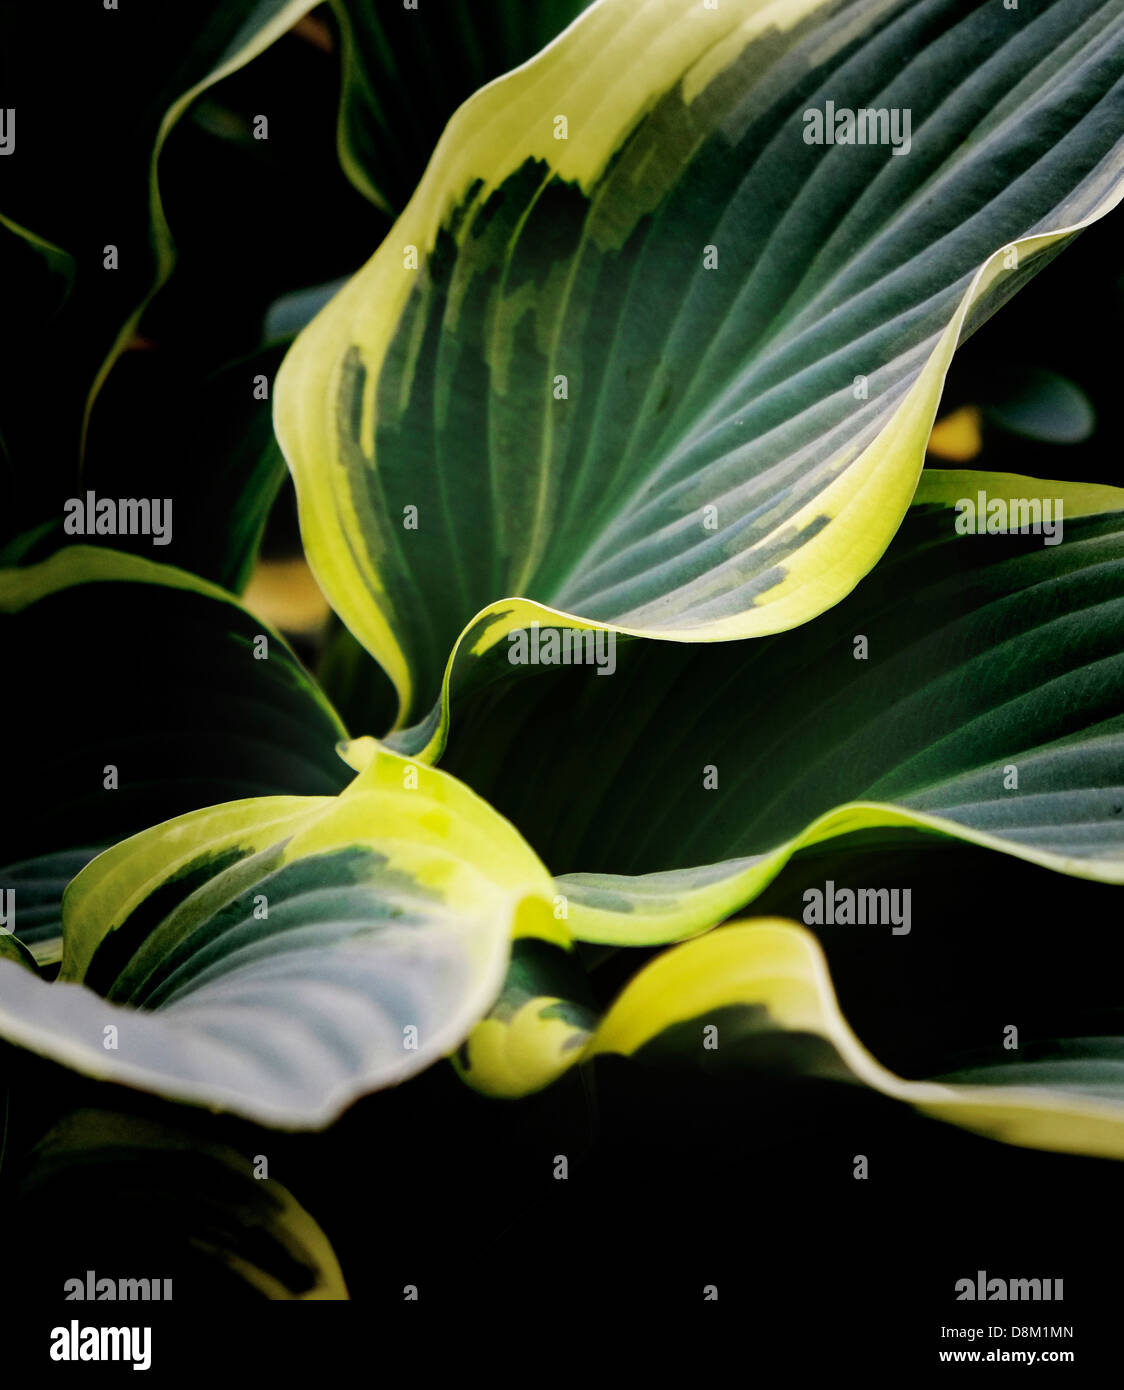 Hosta Regal Splendor Herbaceous Perennial Stock Photo 56988757